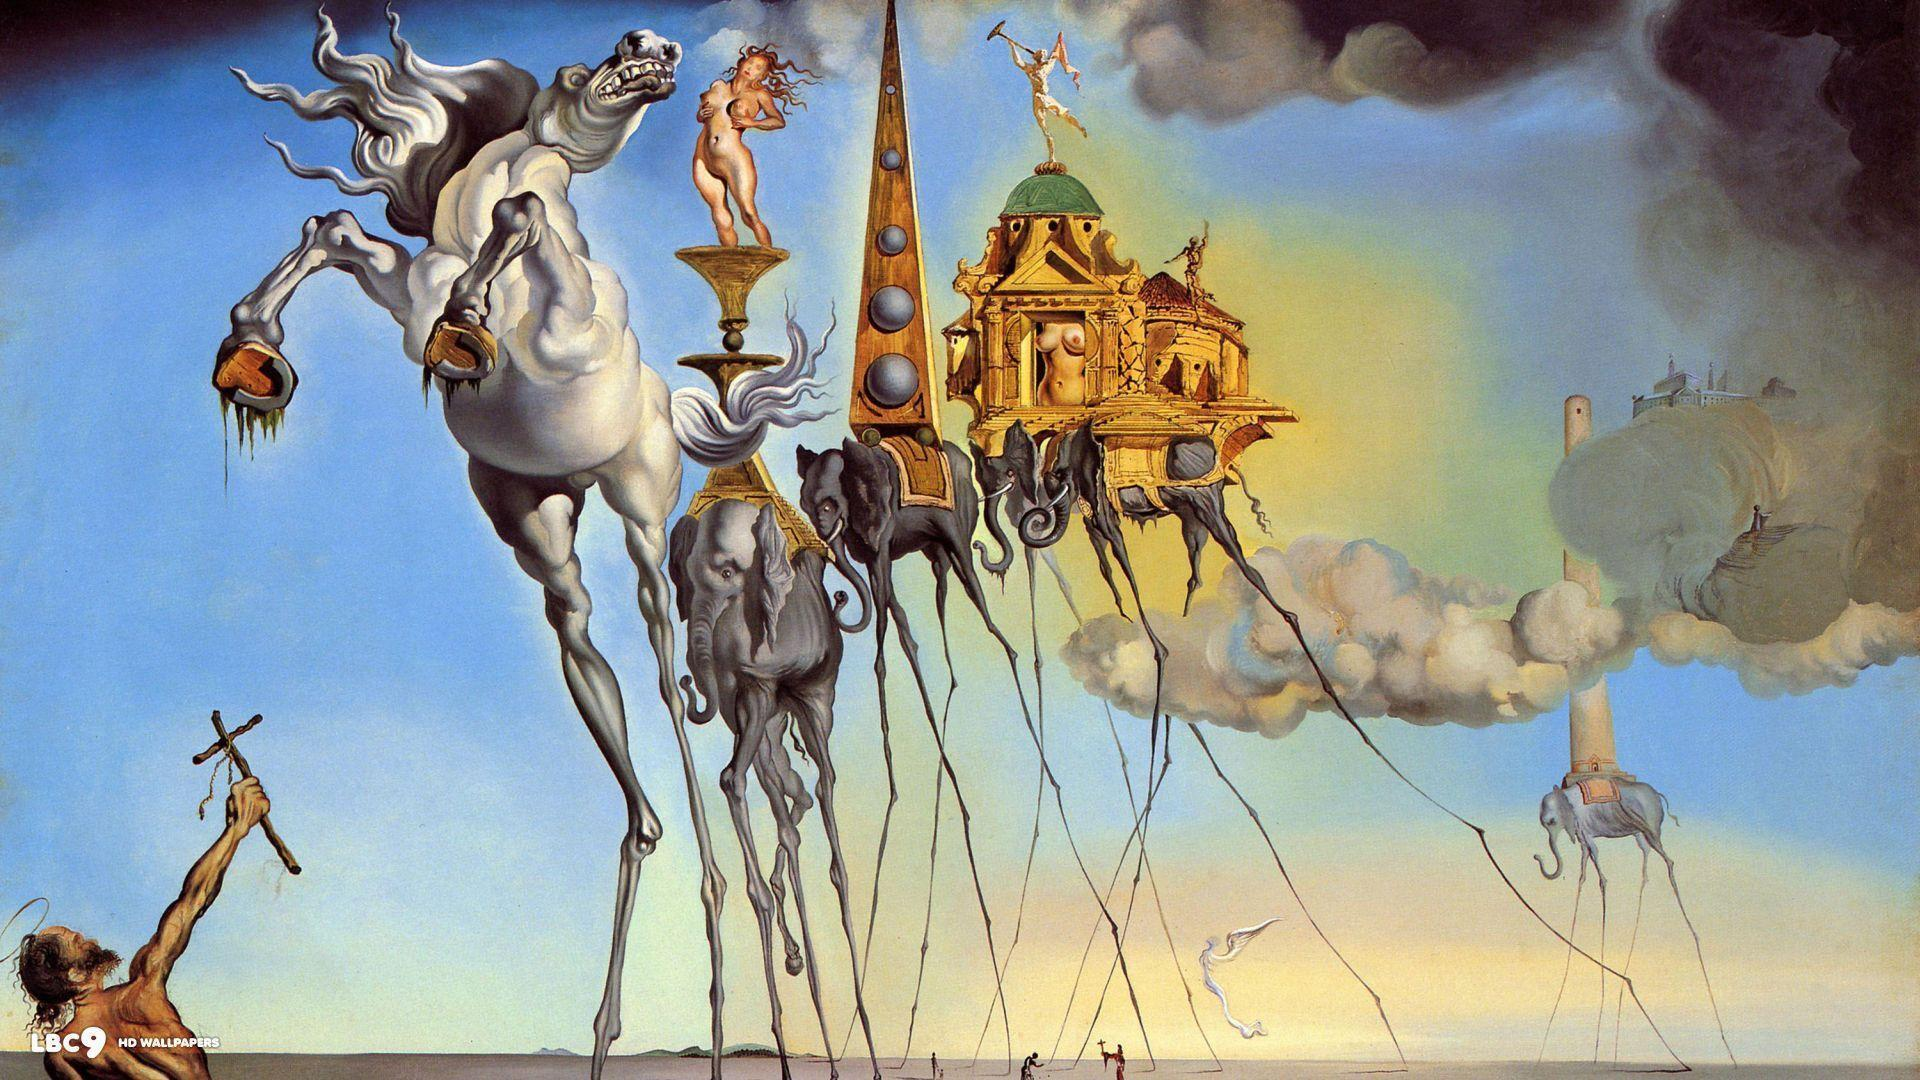 salvador dali wallpaper 36/38 | paintings hd backgrounds